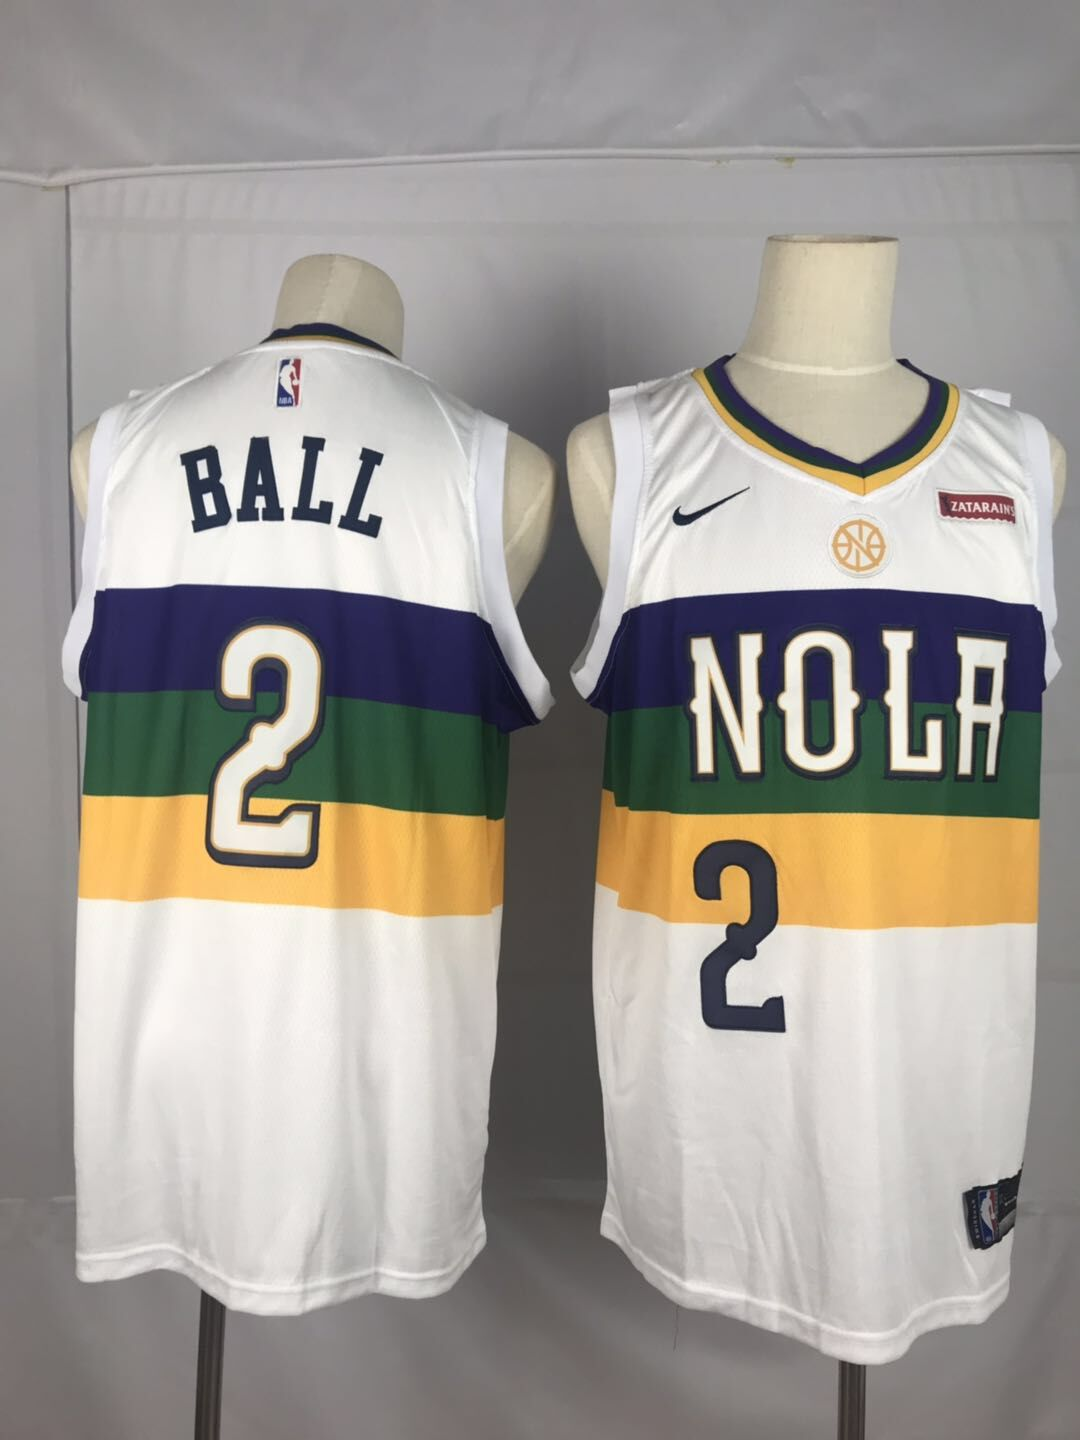 Men New Orleans Pelicans 2 Ball White City Edition Nike NBA Jerseys